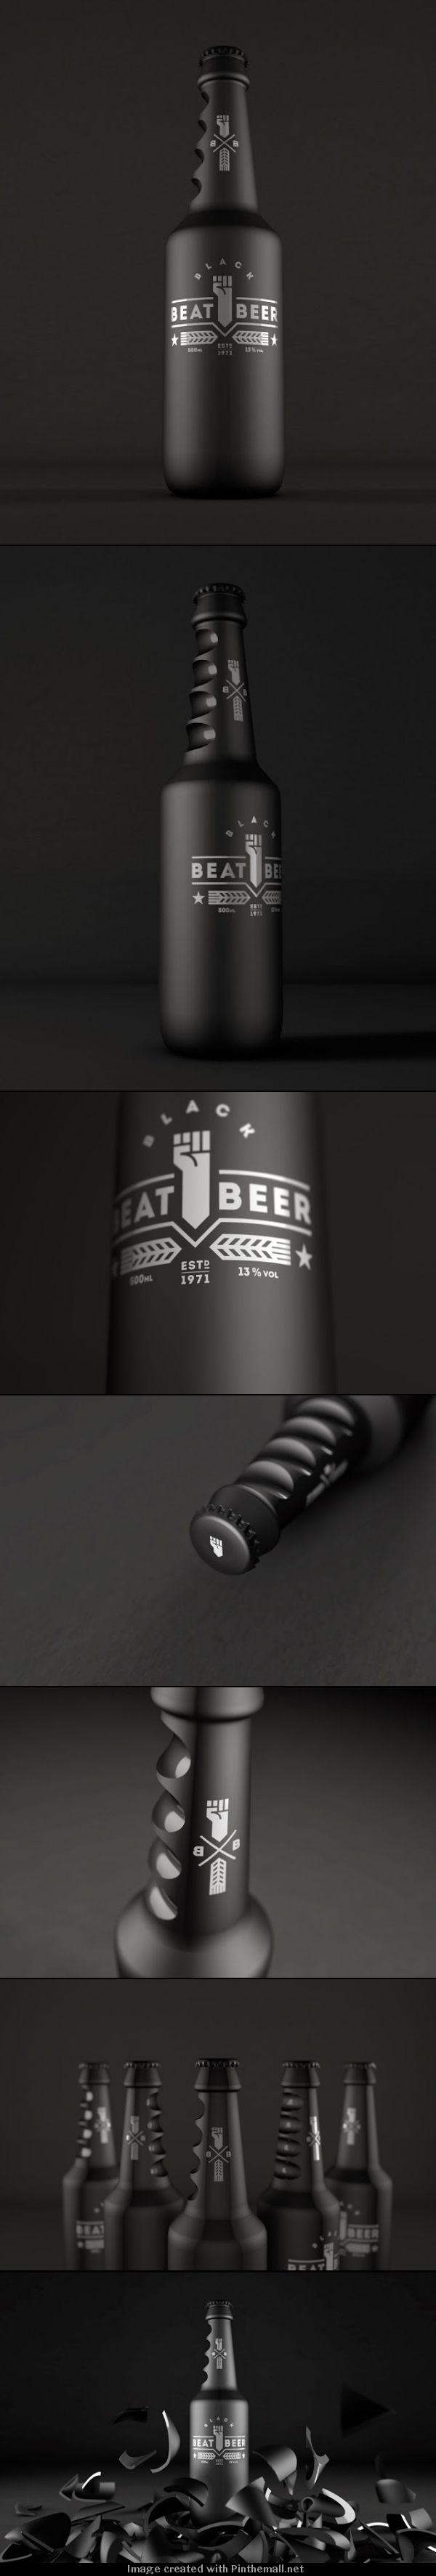 Beat Beer (Concept) PD